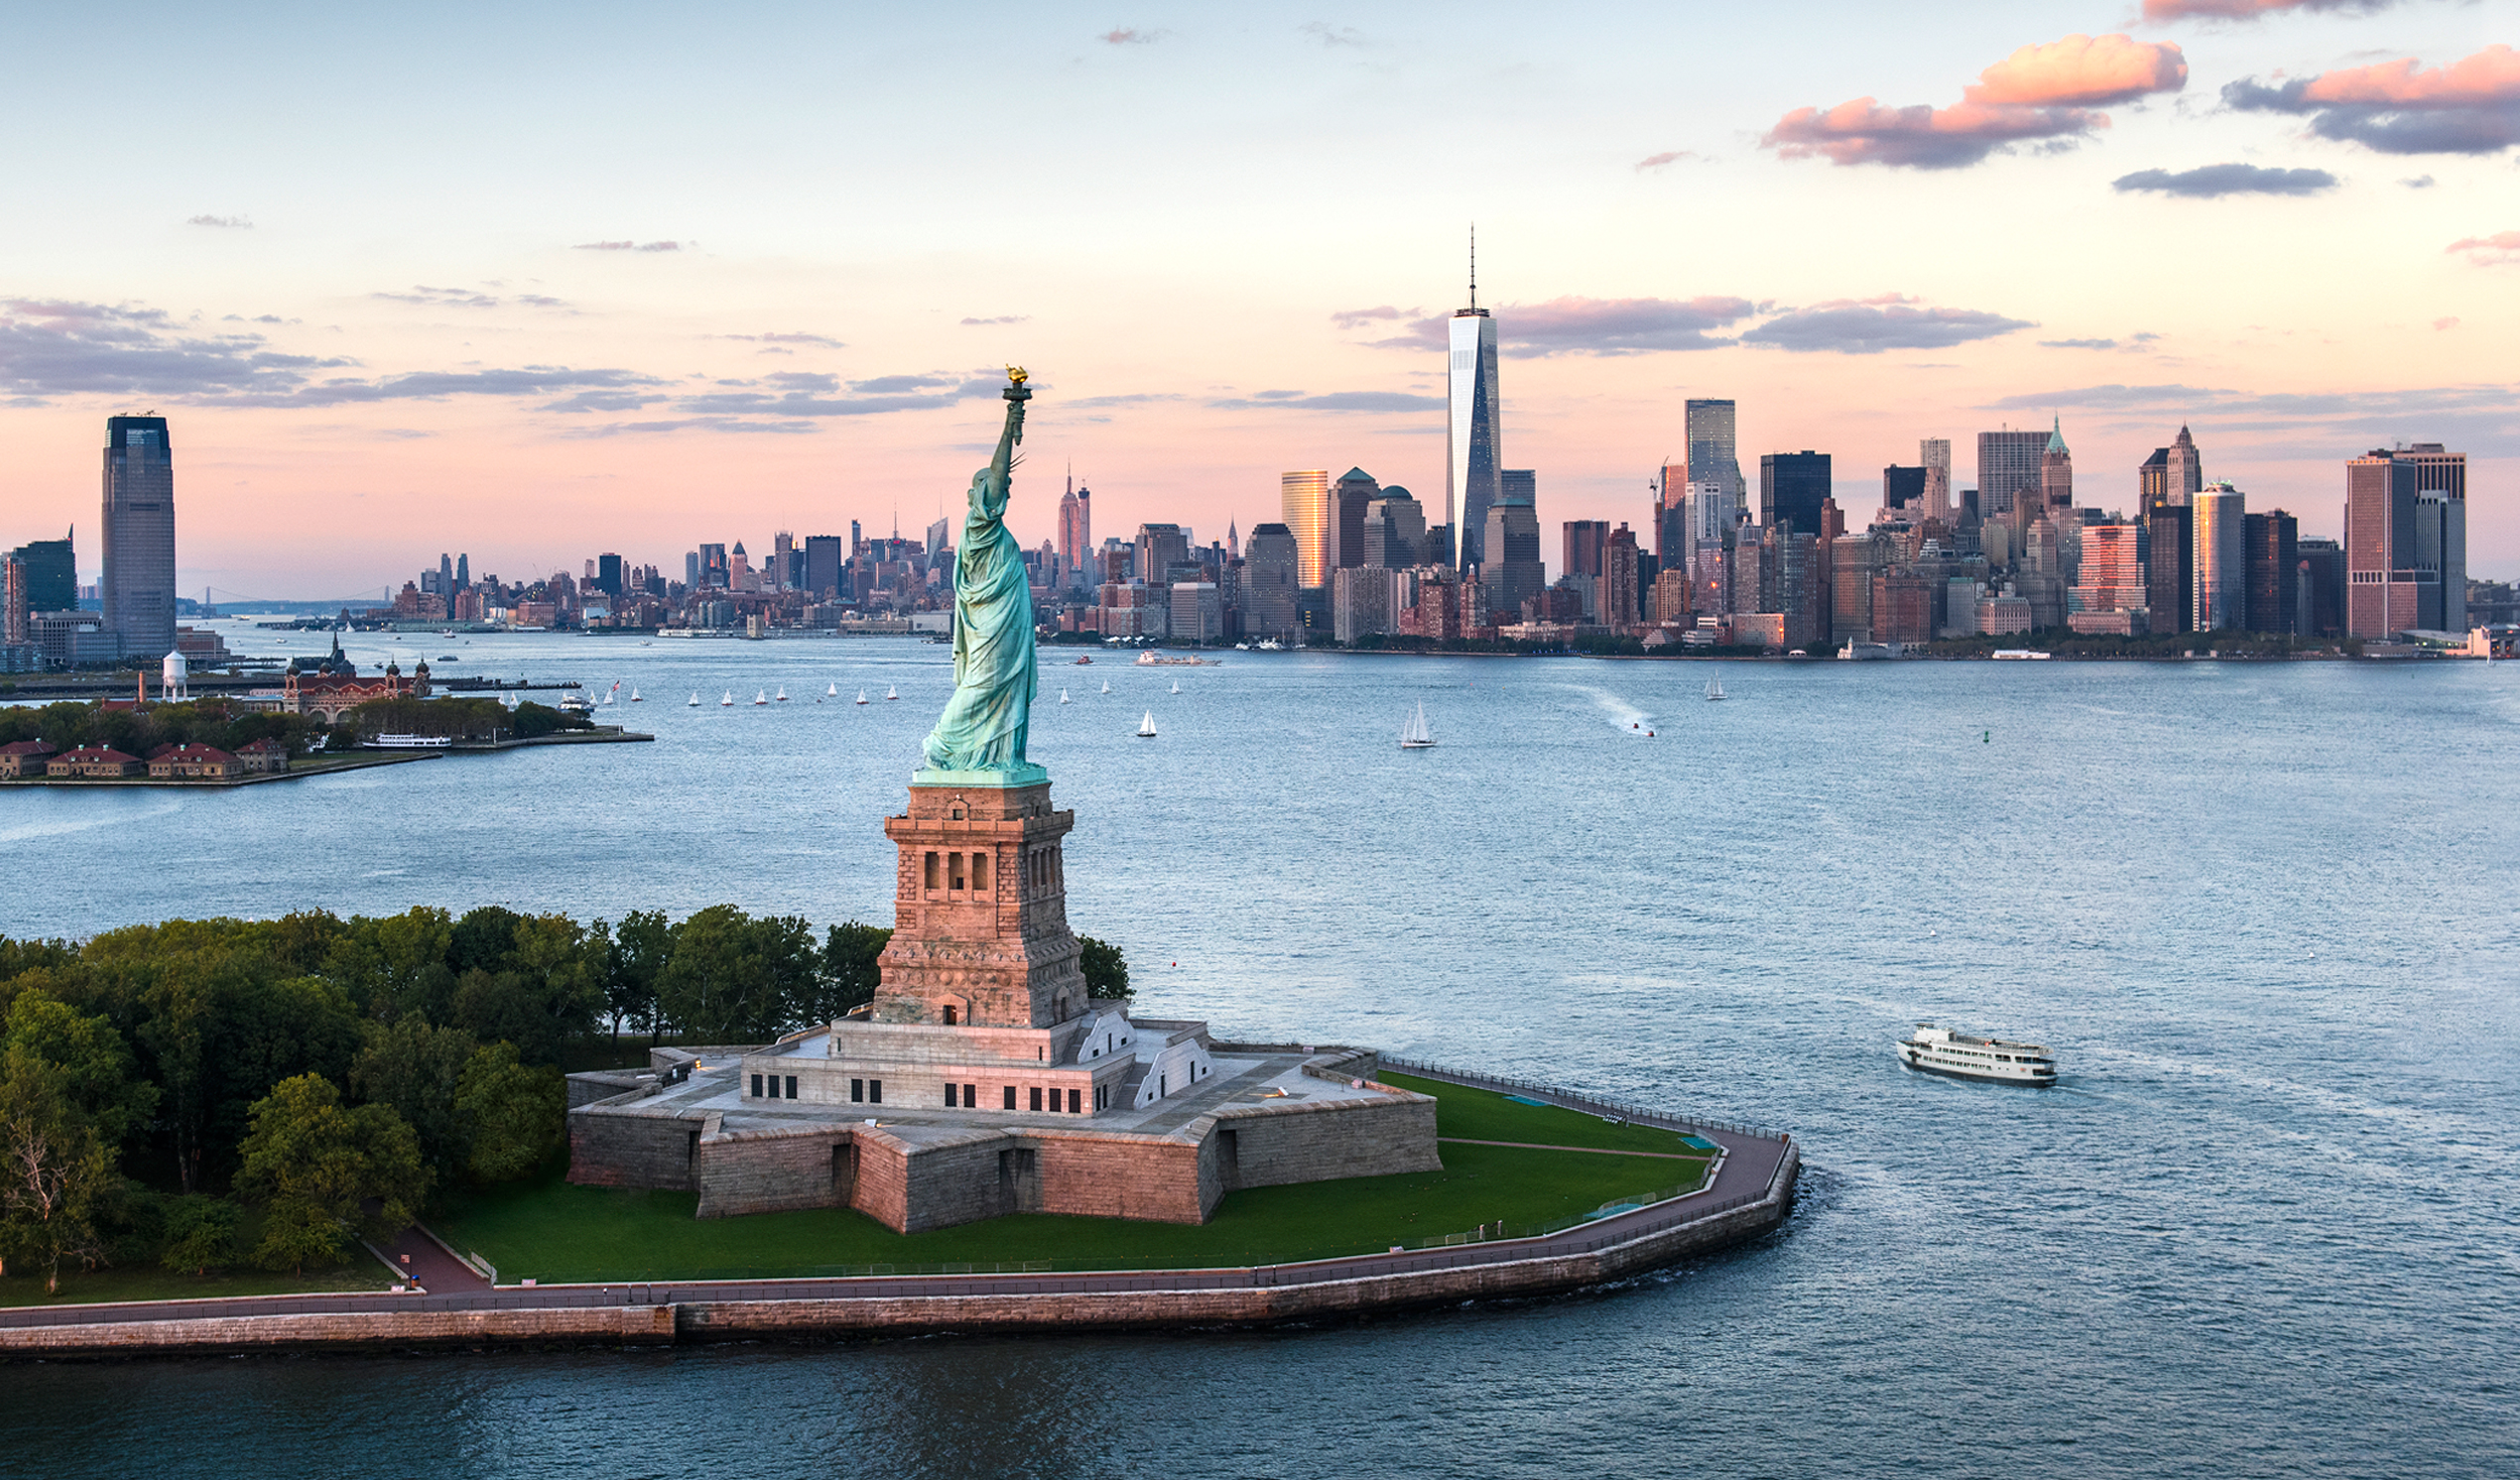 THE STATUE OF LIBERTY EXPERIENCE | Statue Cruises